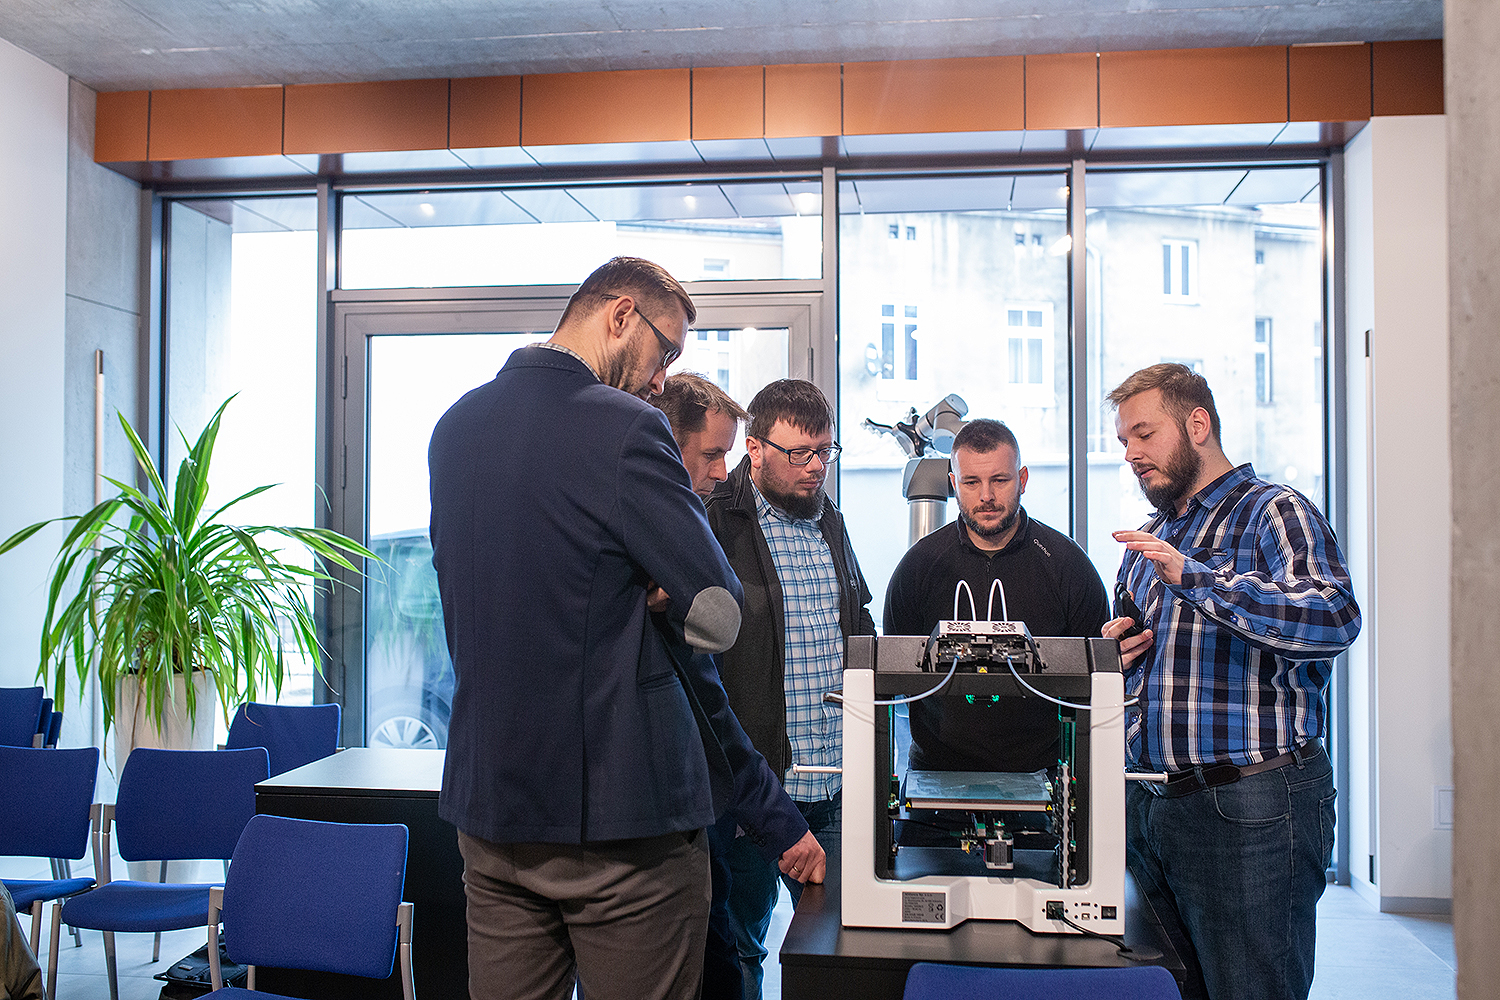 Showroom with 3D printers in Silesia. 3DGence has started cooperation with the PANOVA